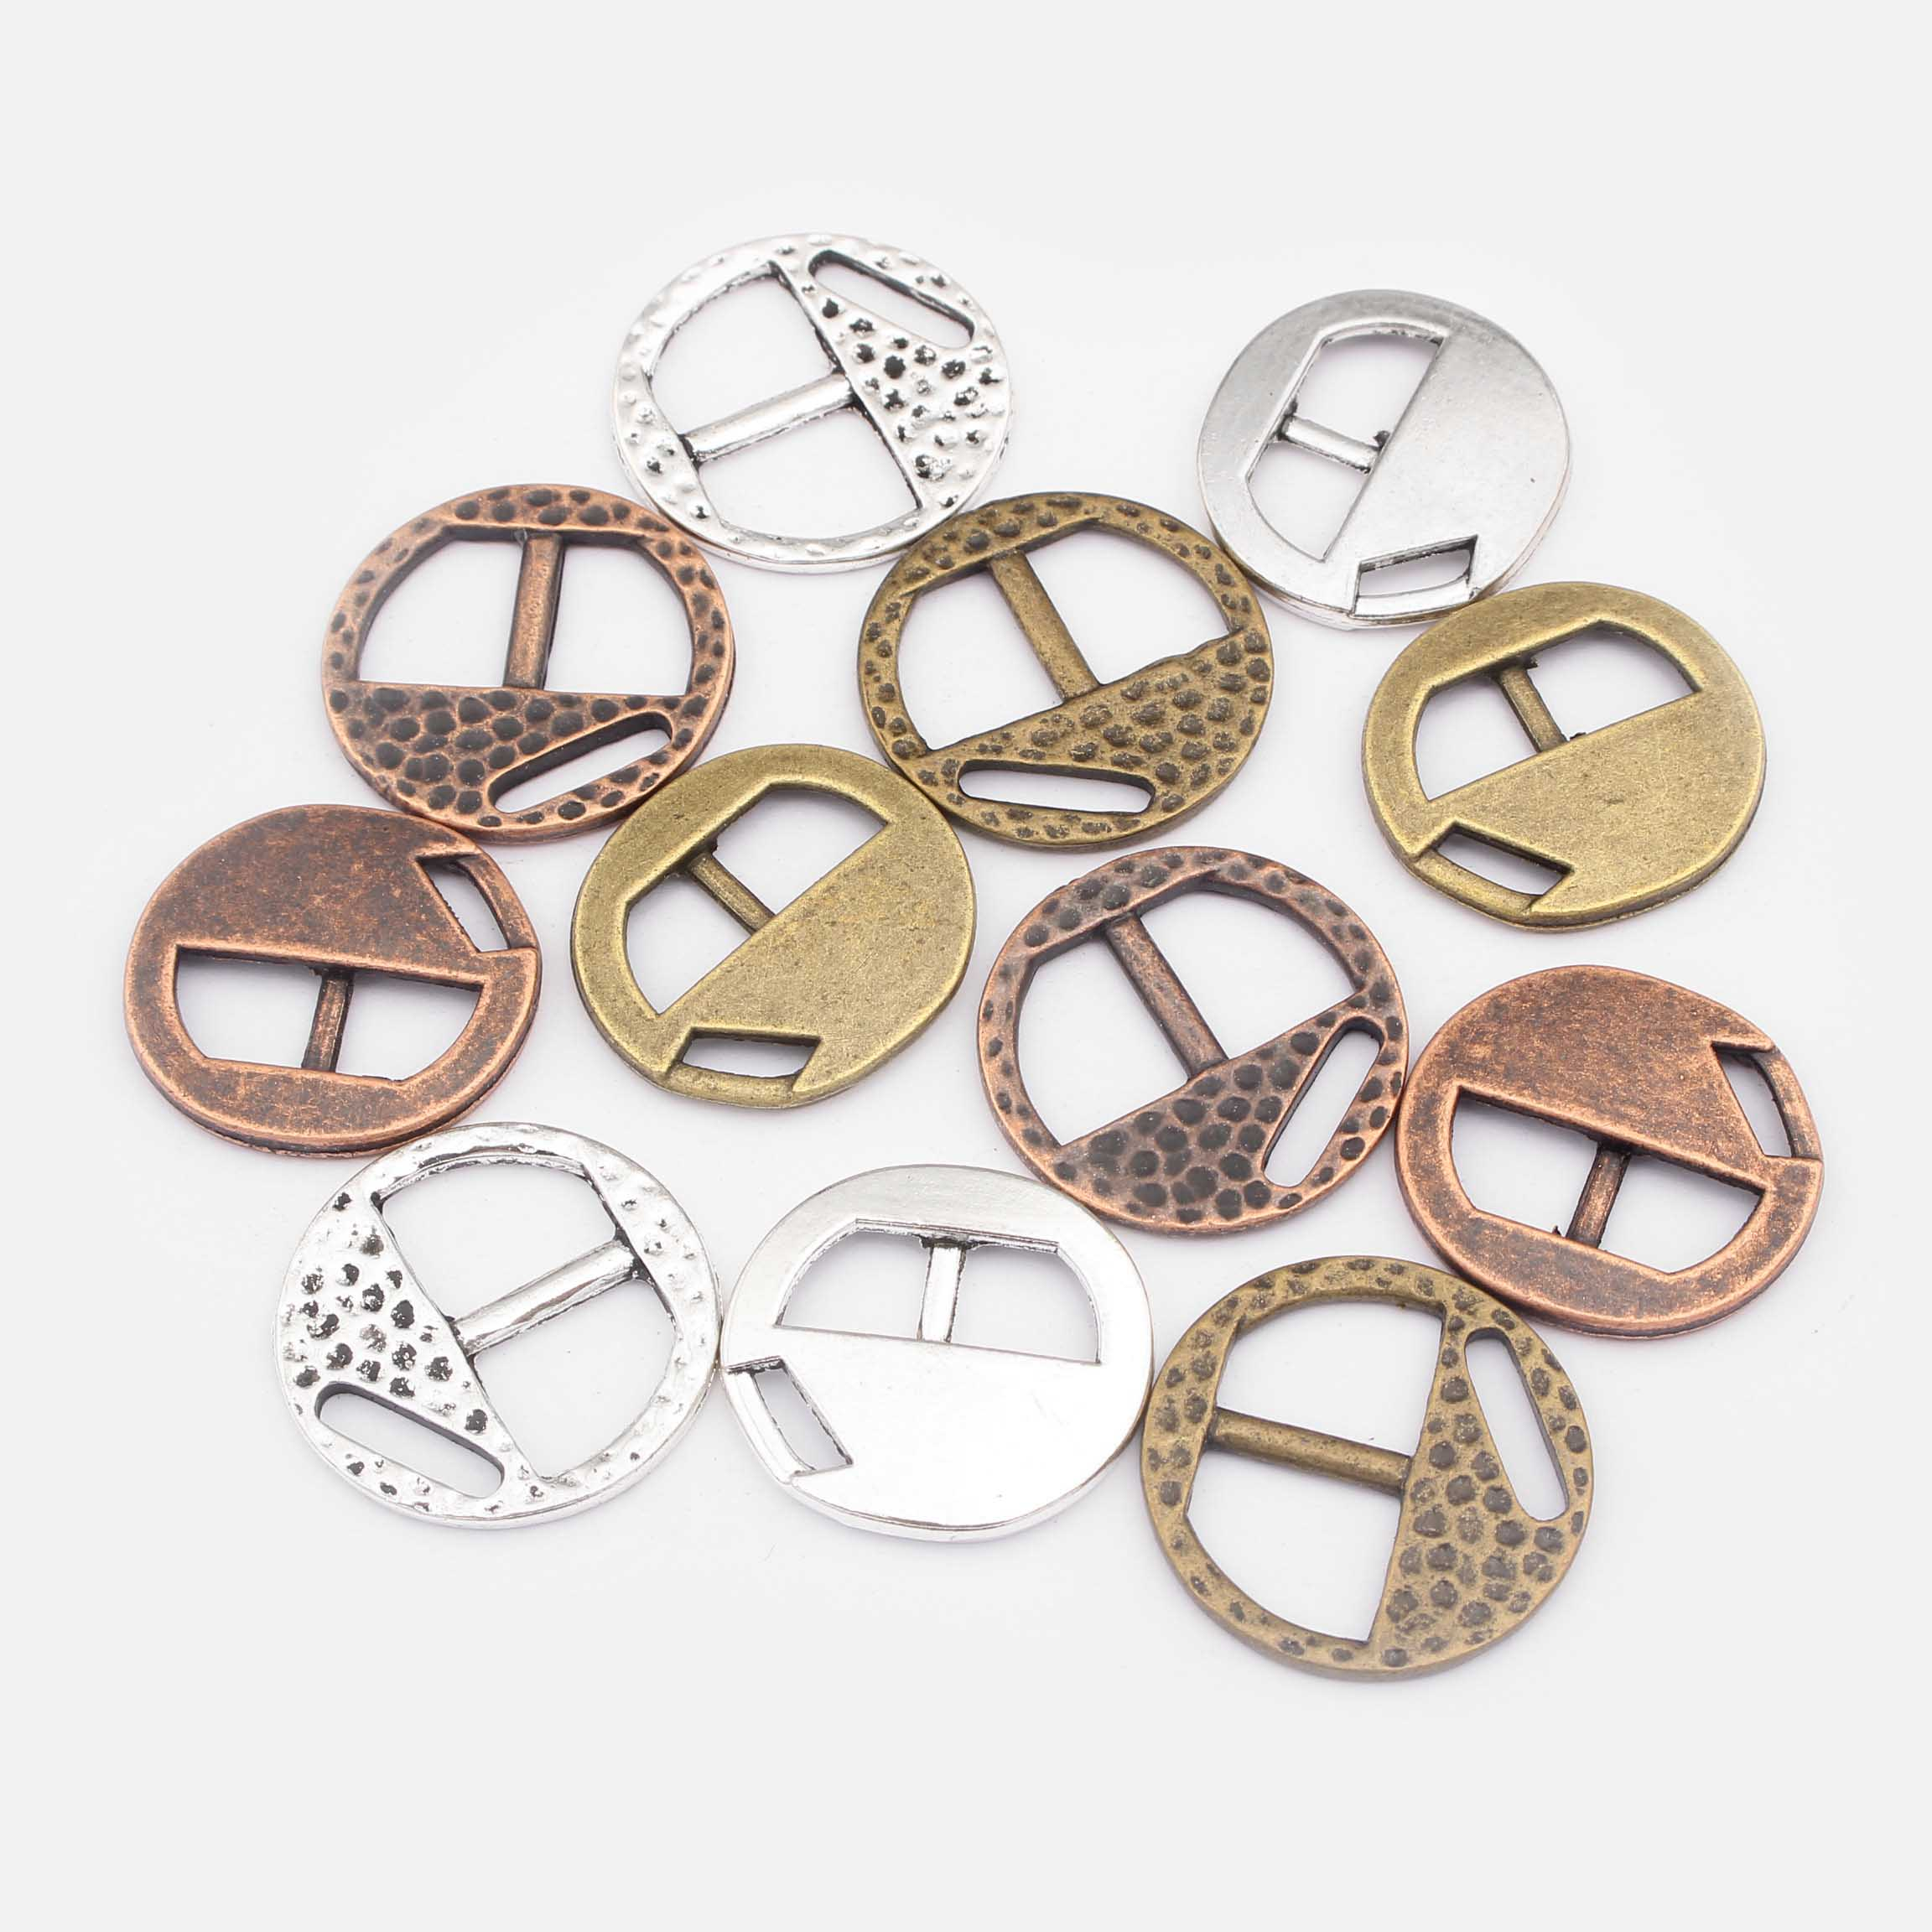 10pcs Fashion Jewelry Antique Silver Copper Bronze Hammered Buckle Clasps For 5mm 8mm Flat Leather Cord Bracelet Jewelry Making in Jewelry Findings Components from Jewelry Accessories